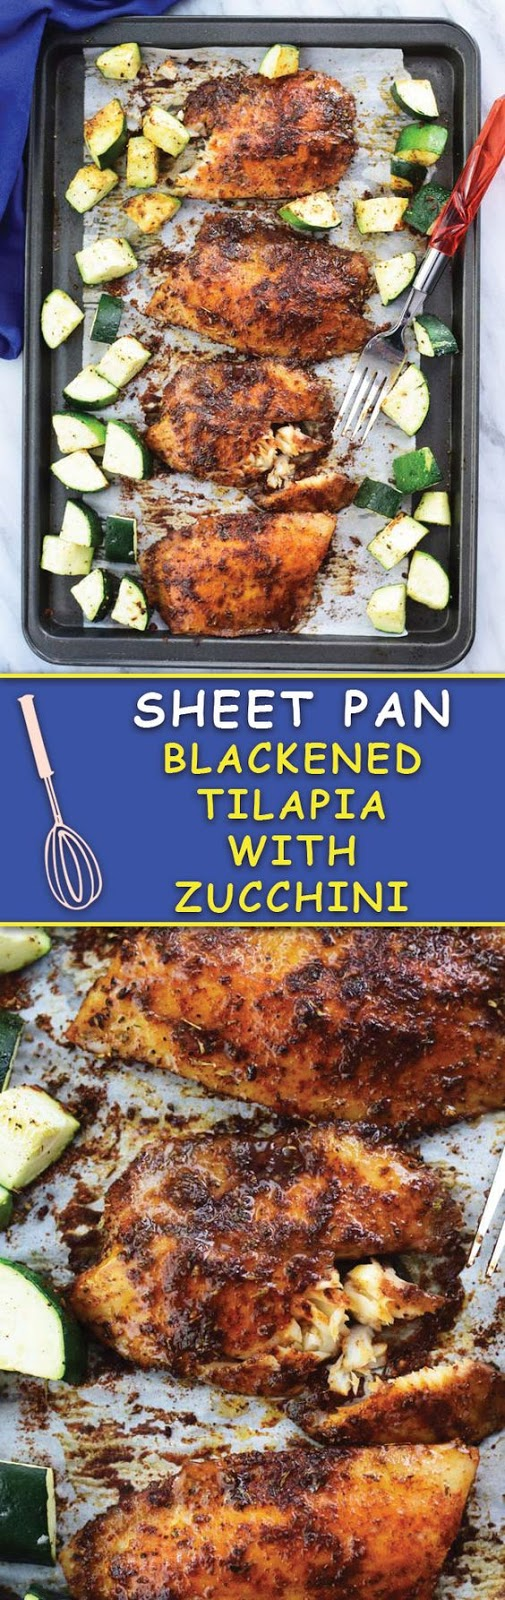 SHEET PAN BAKED BLACKENED TILAPIA WITH ZUCCHINI